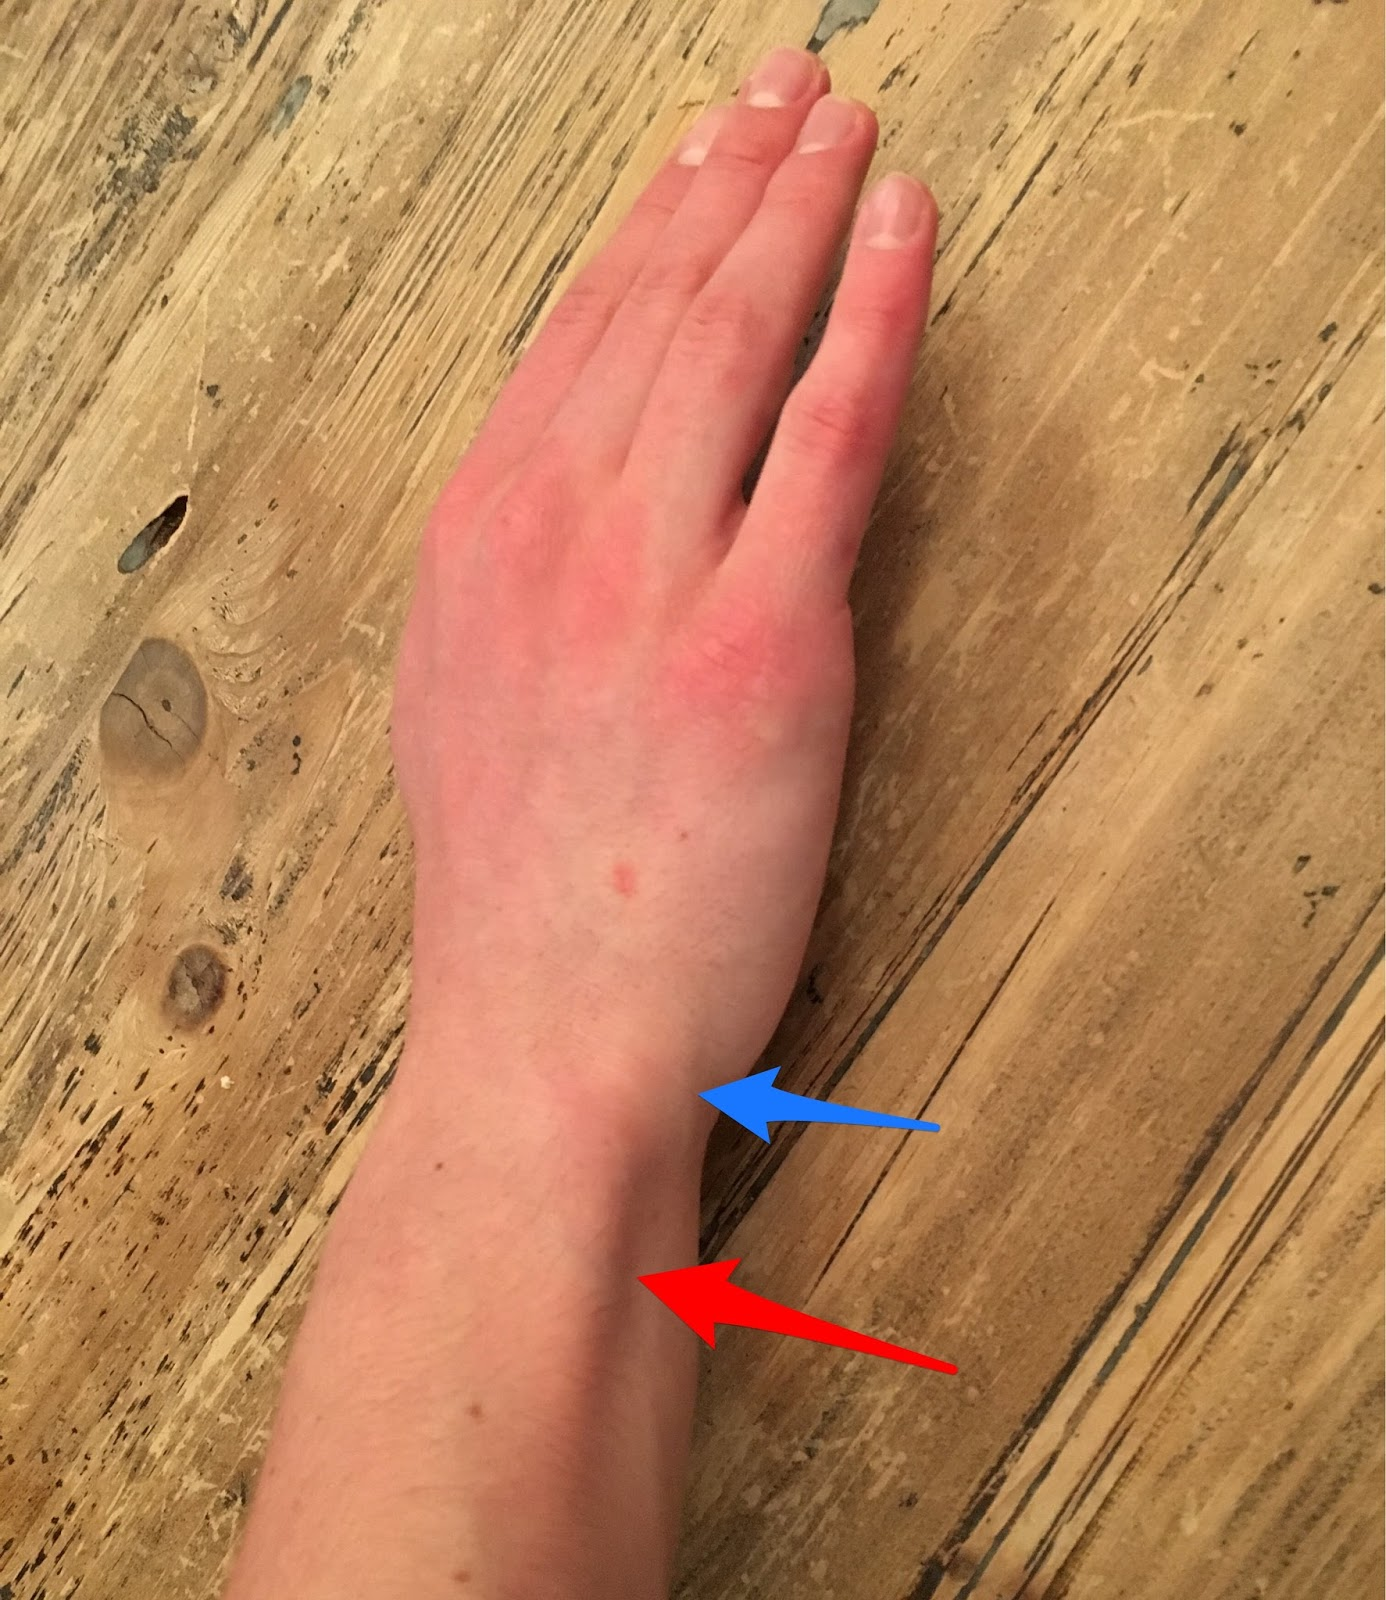 Young Athlete Center Wrist Pain In Baseball